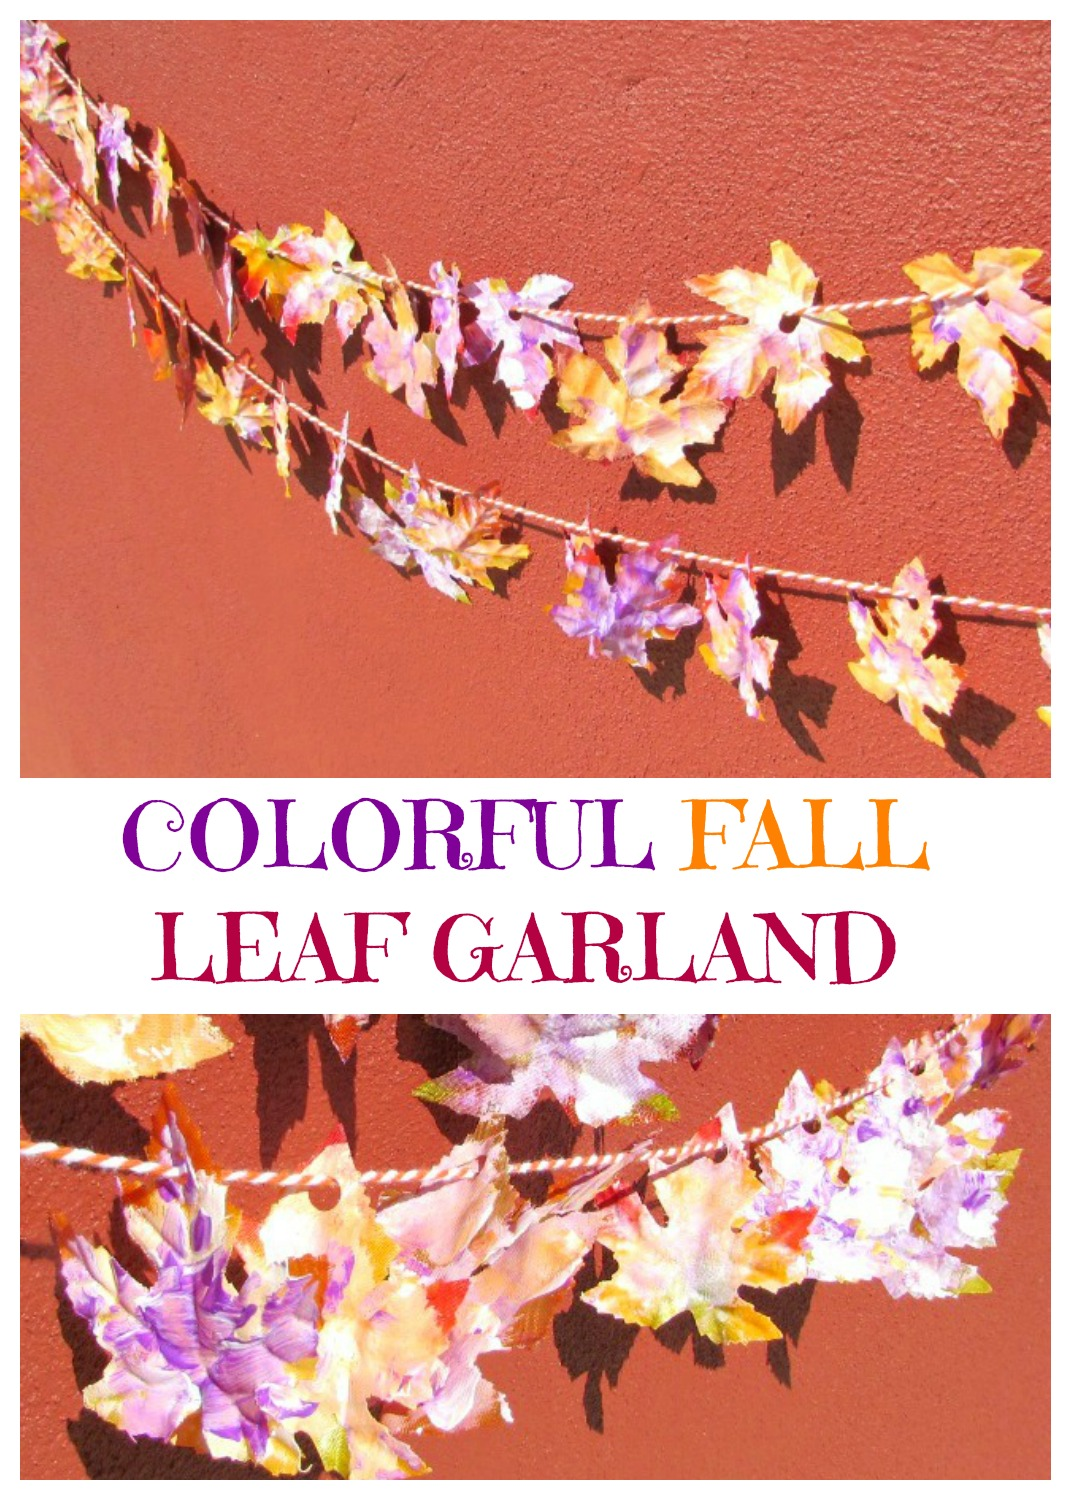 Colorful Fall Leaf Garland